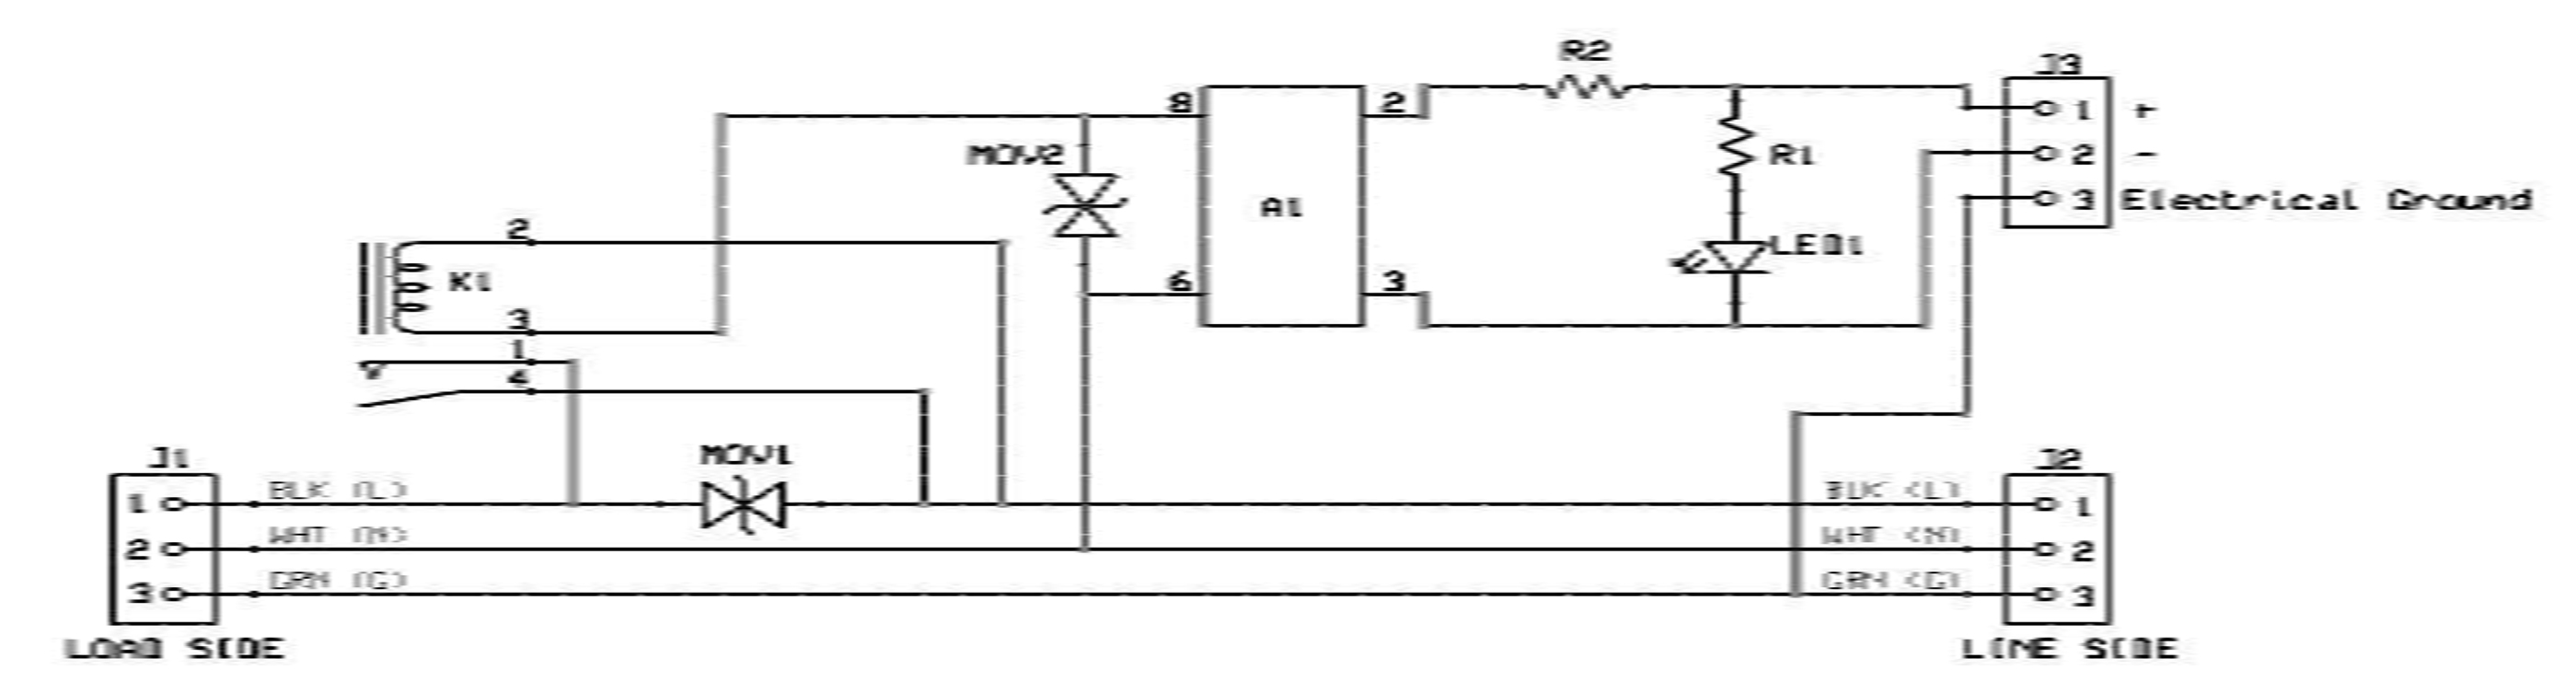 Drivers Relays And Solid State Mbed Triac Valve Wiring Diagram Power Switch Tail Ii Schematic